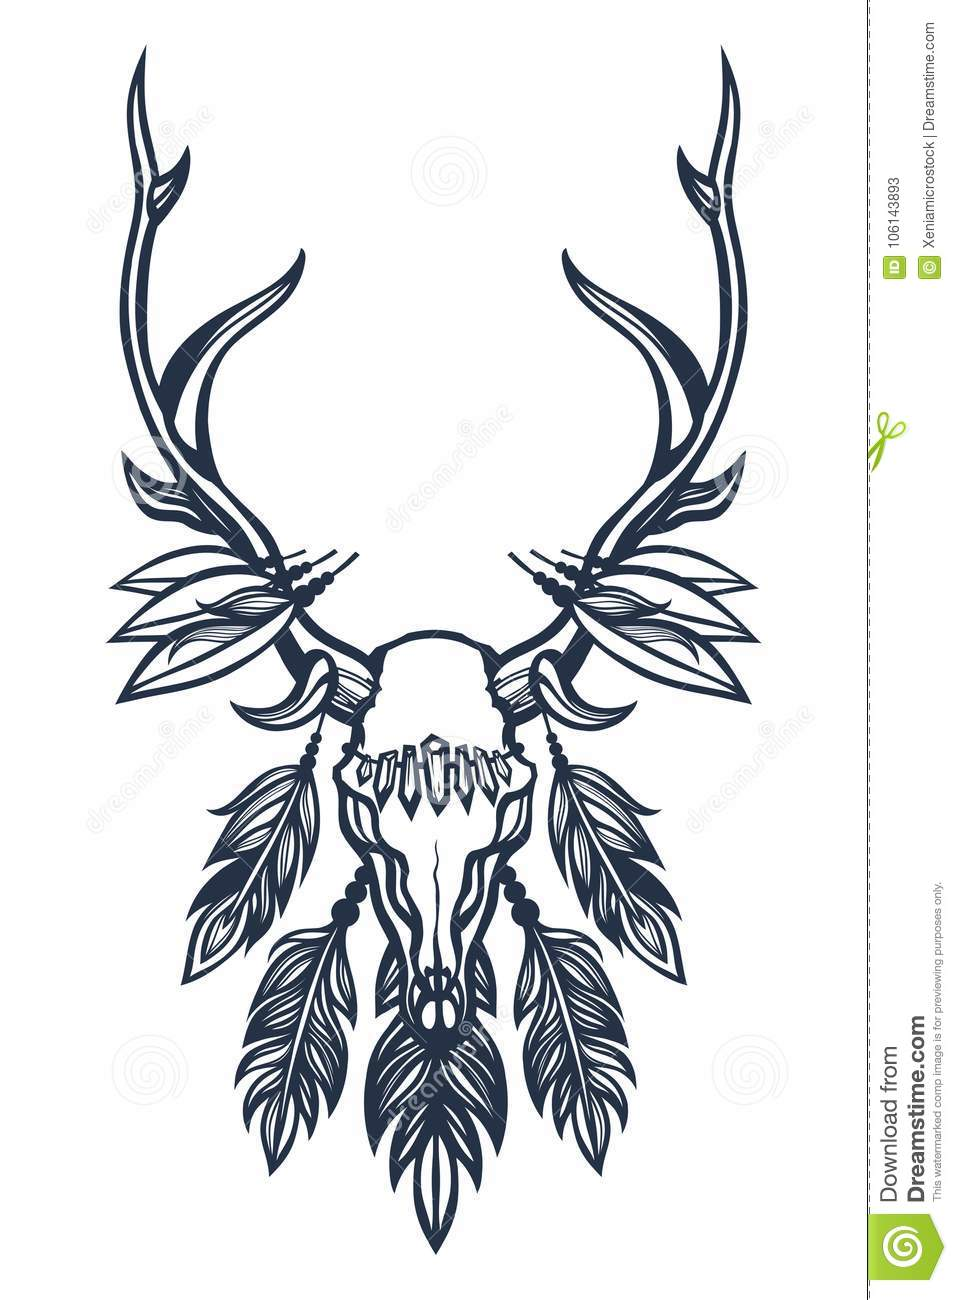 Skull Of The Deer With Antlers Feathers And Crystals Boho